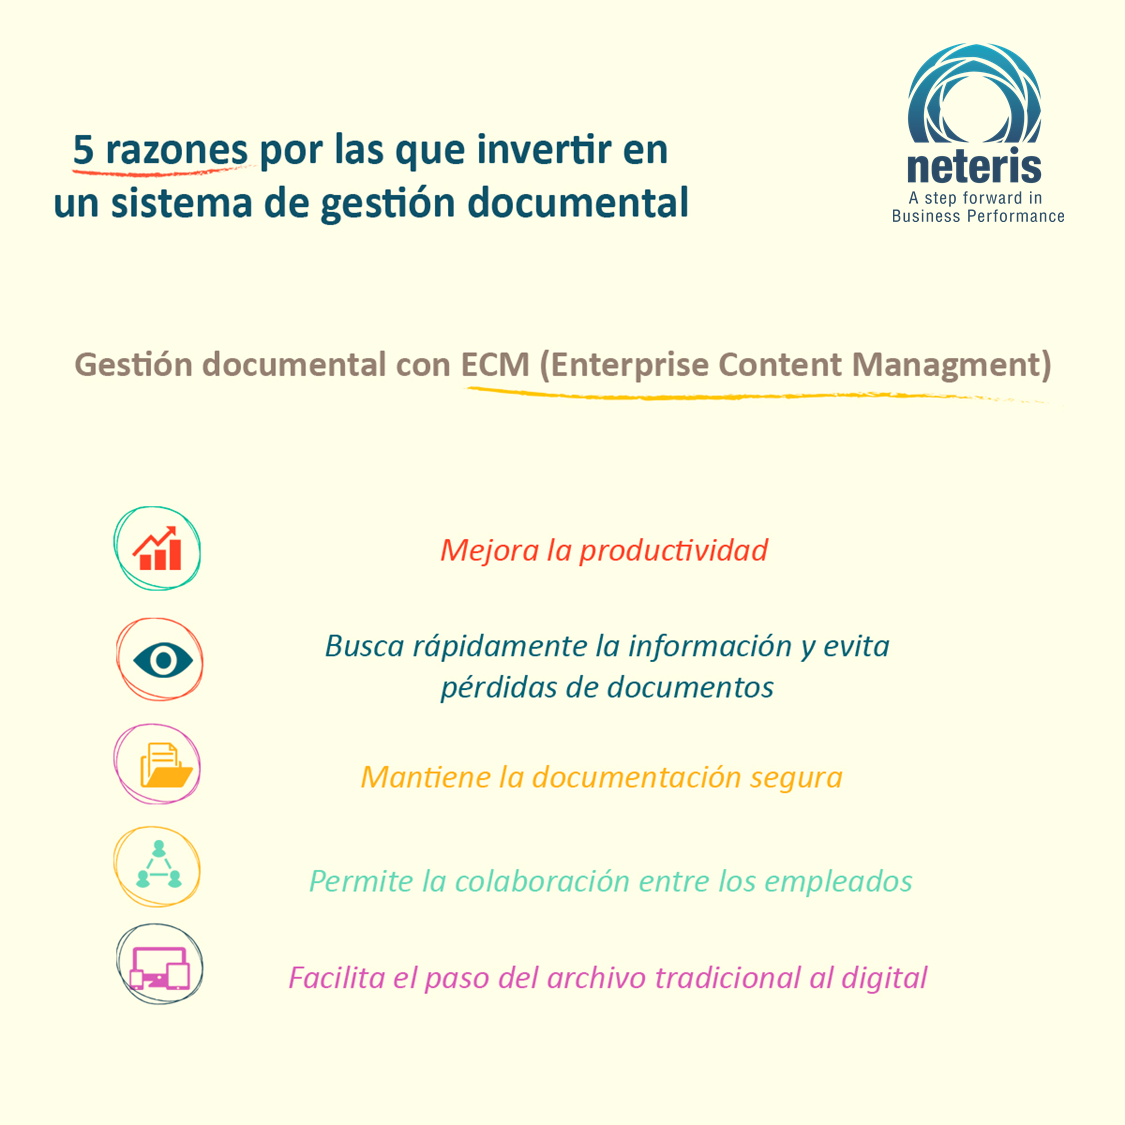 infografía gestion documental v2.jpg.png